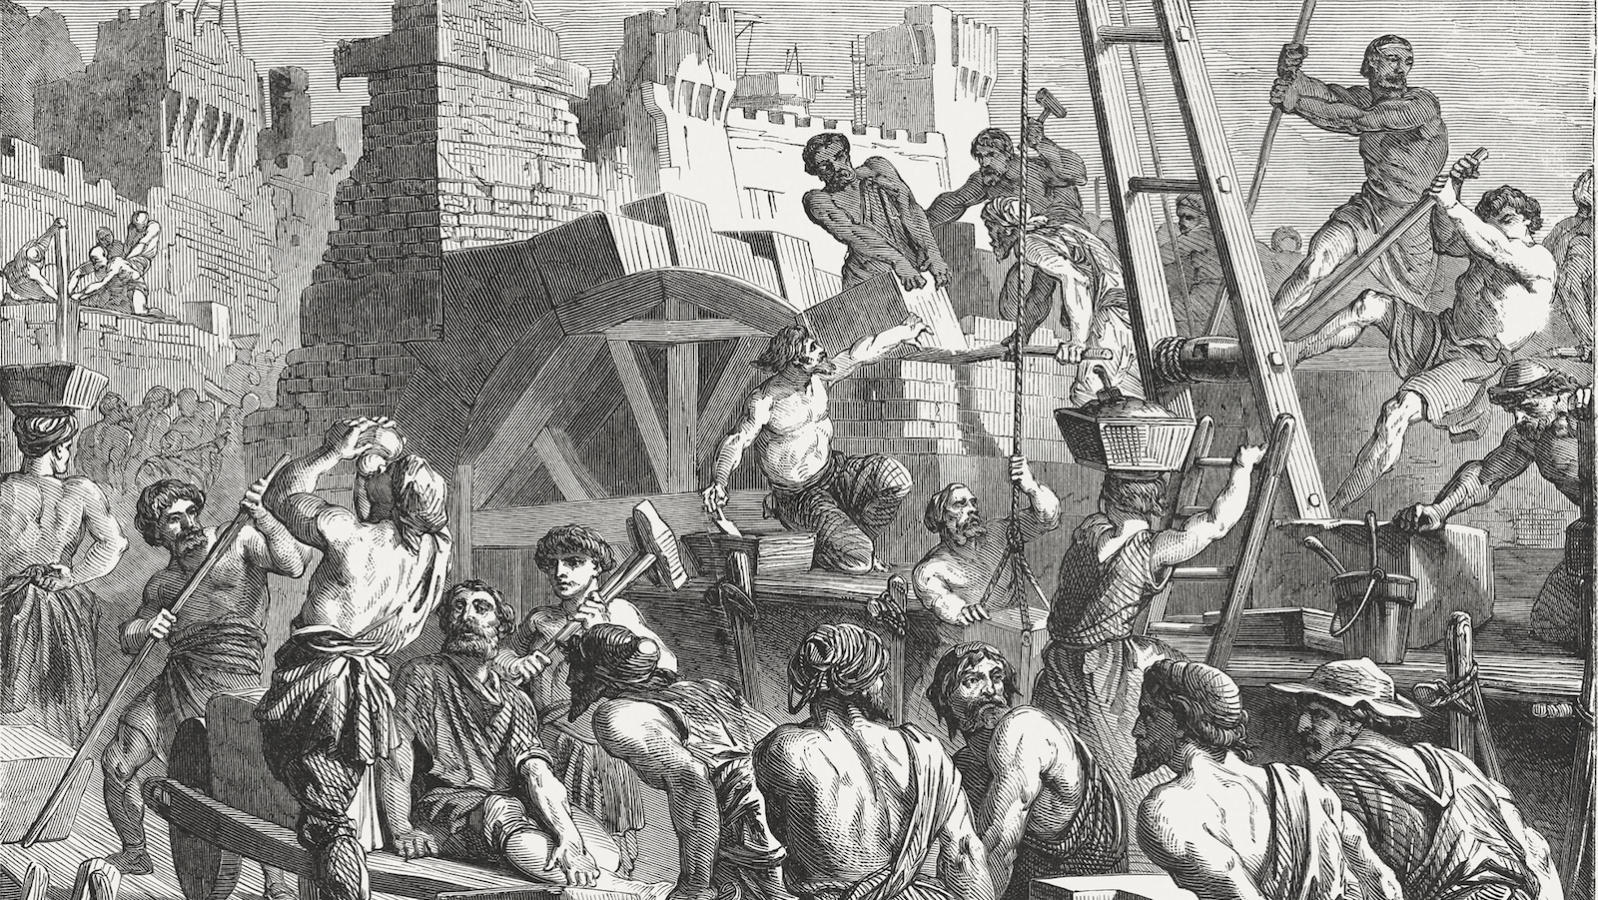 Rebuilding the Wall of Jerusalem (Nehemiah 3-4), published in 1886